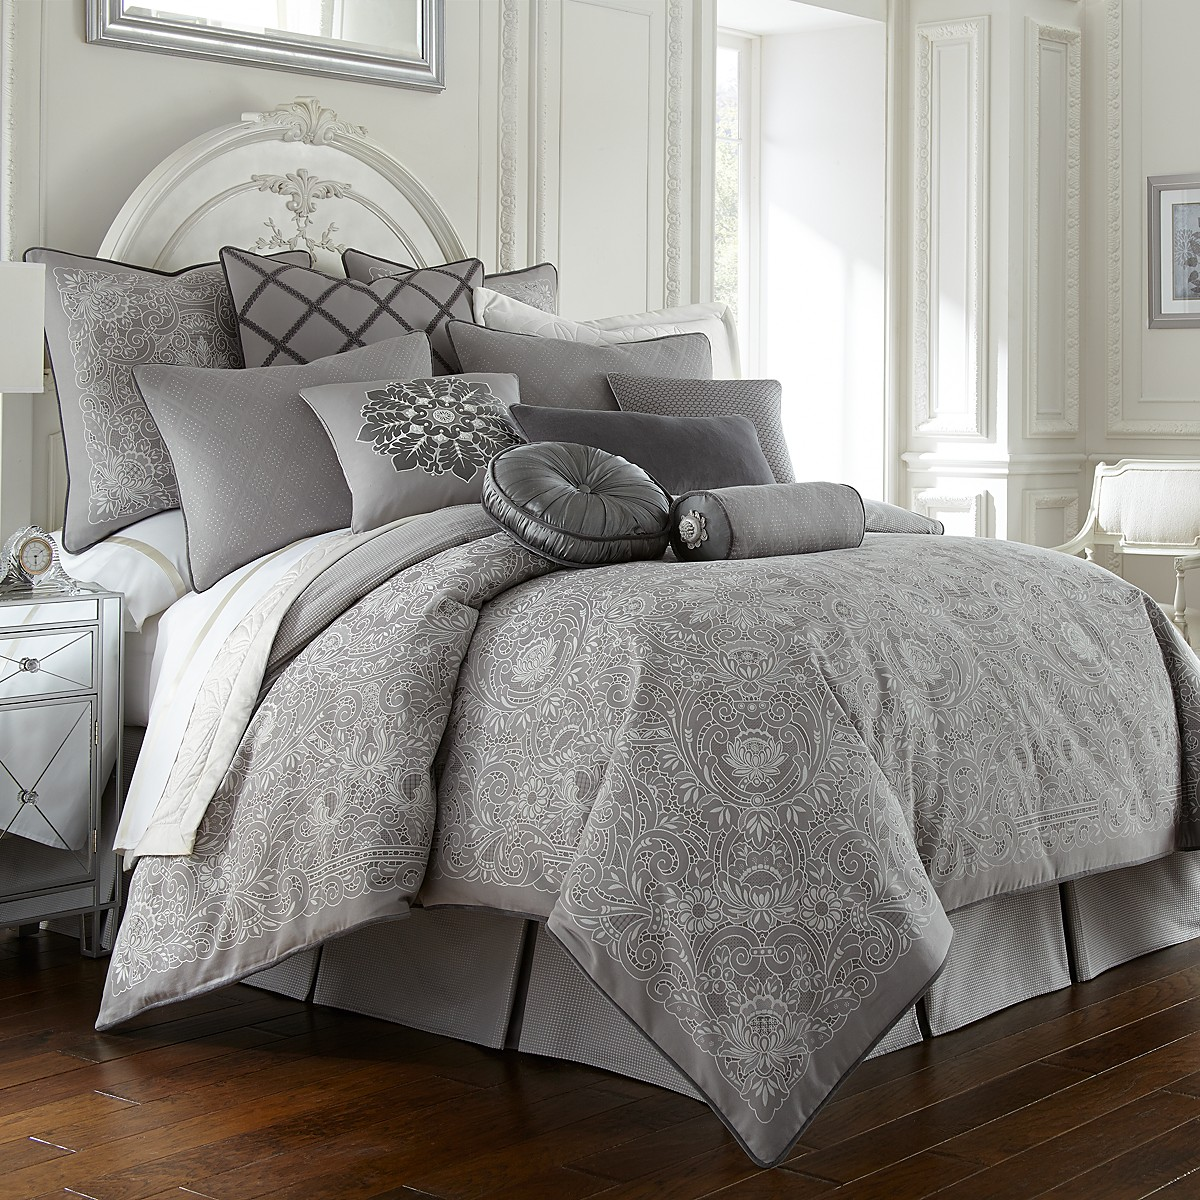 fpx wid bloomingdale shop product set pdpimgshortdescription comforters resmode usm comforter waterford comp bloomingdales s qlt annalise tif op sharpen king layer